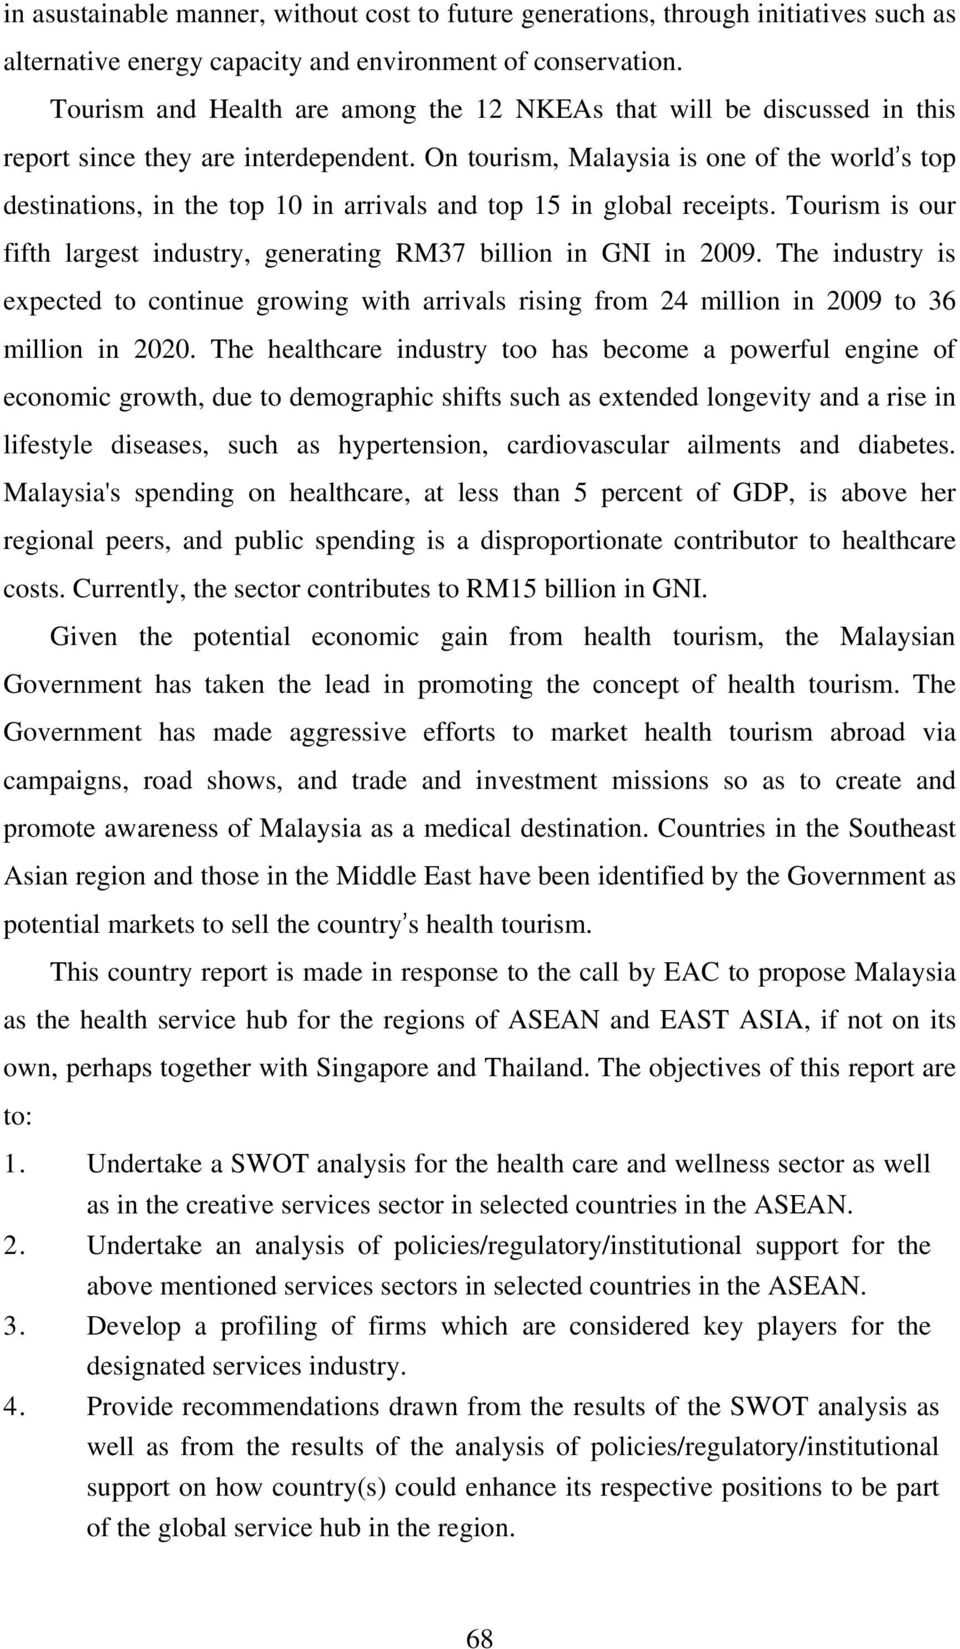 swot analysis spa industry in malaysia Full-text paper (pdf): medical tourism destination swot analysis: a case study of malaysia, thailand, singapore and india.